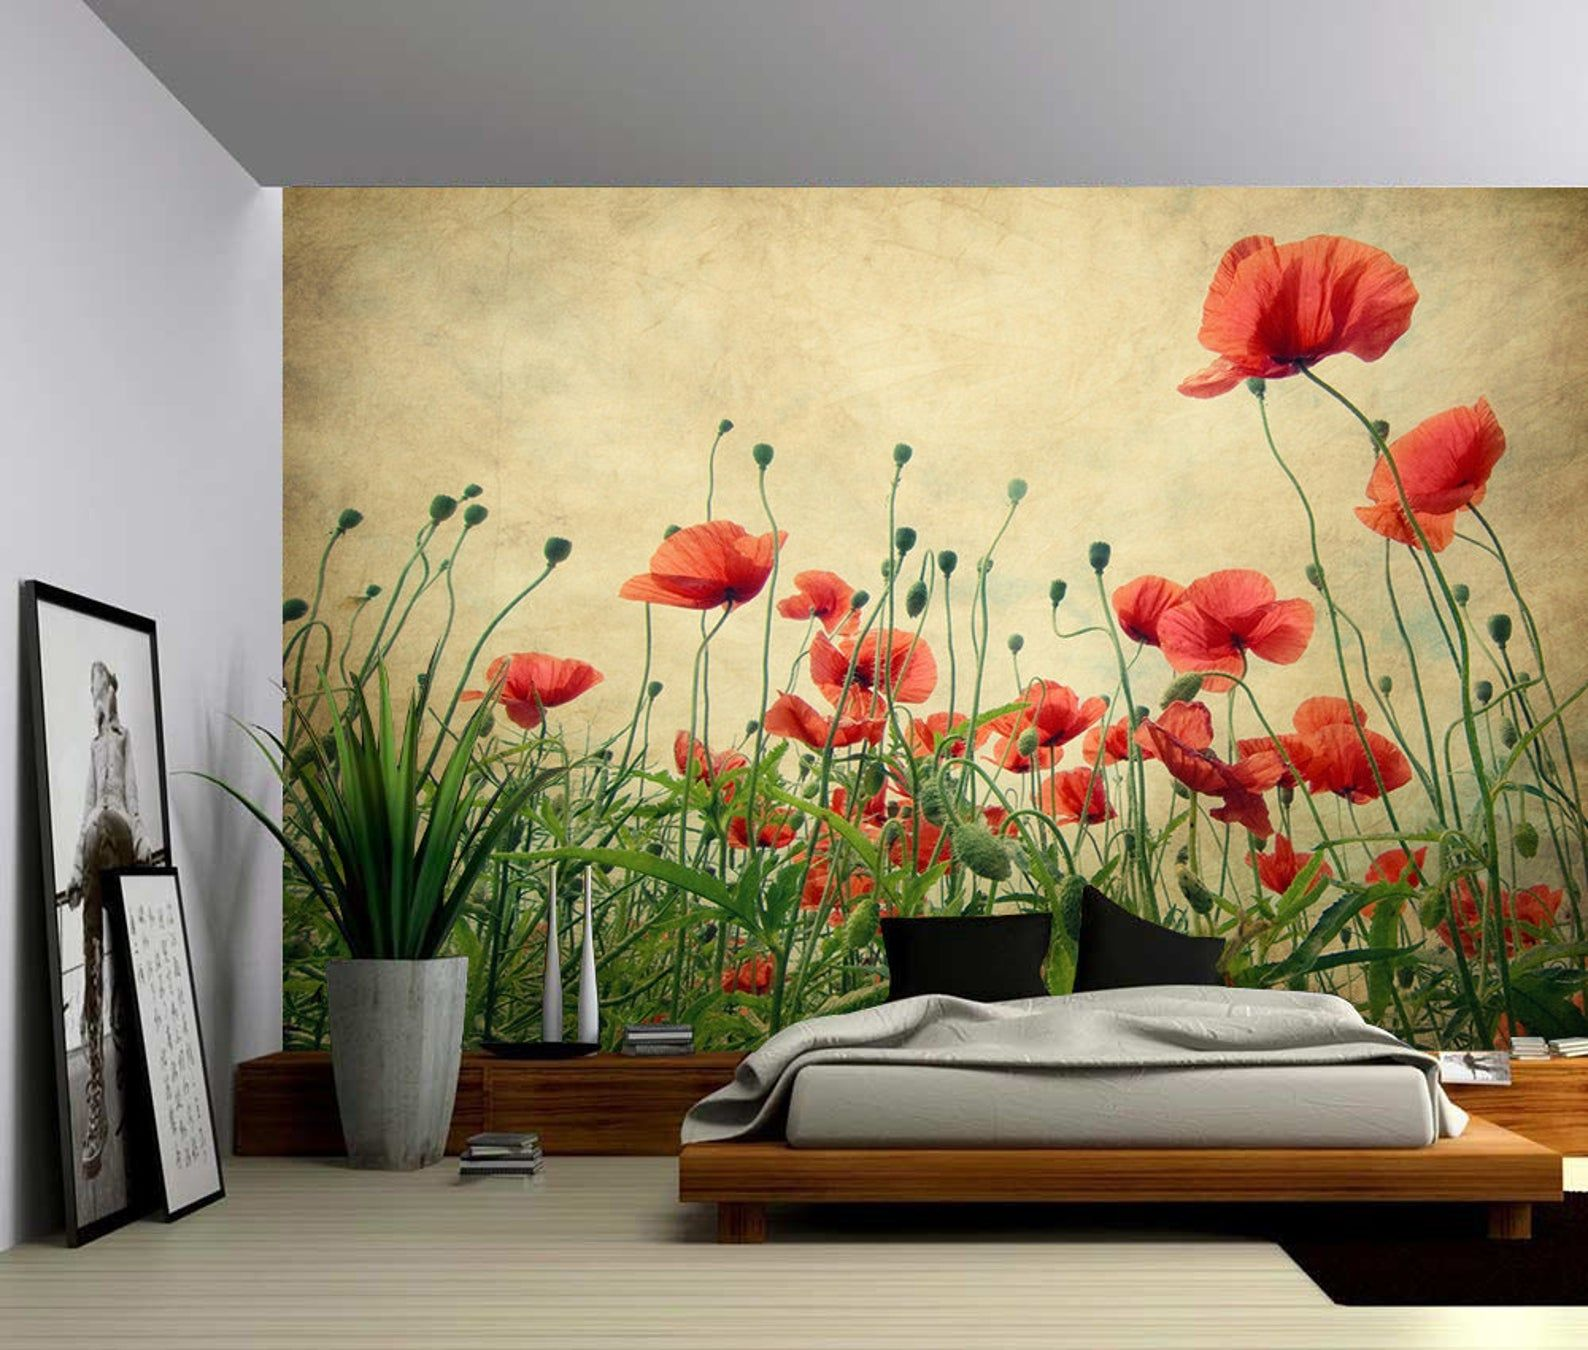 Red Poppies Large Wall Mural Self Adhesive Vinyl Wallpaper Peel Stick Fabric Wall Decal Large Wall Murals Wall Murals Mural